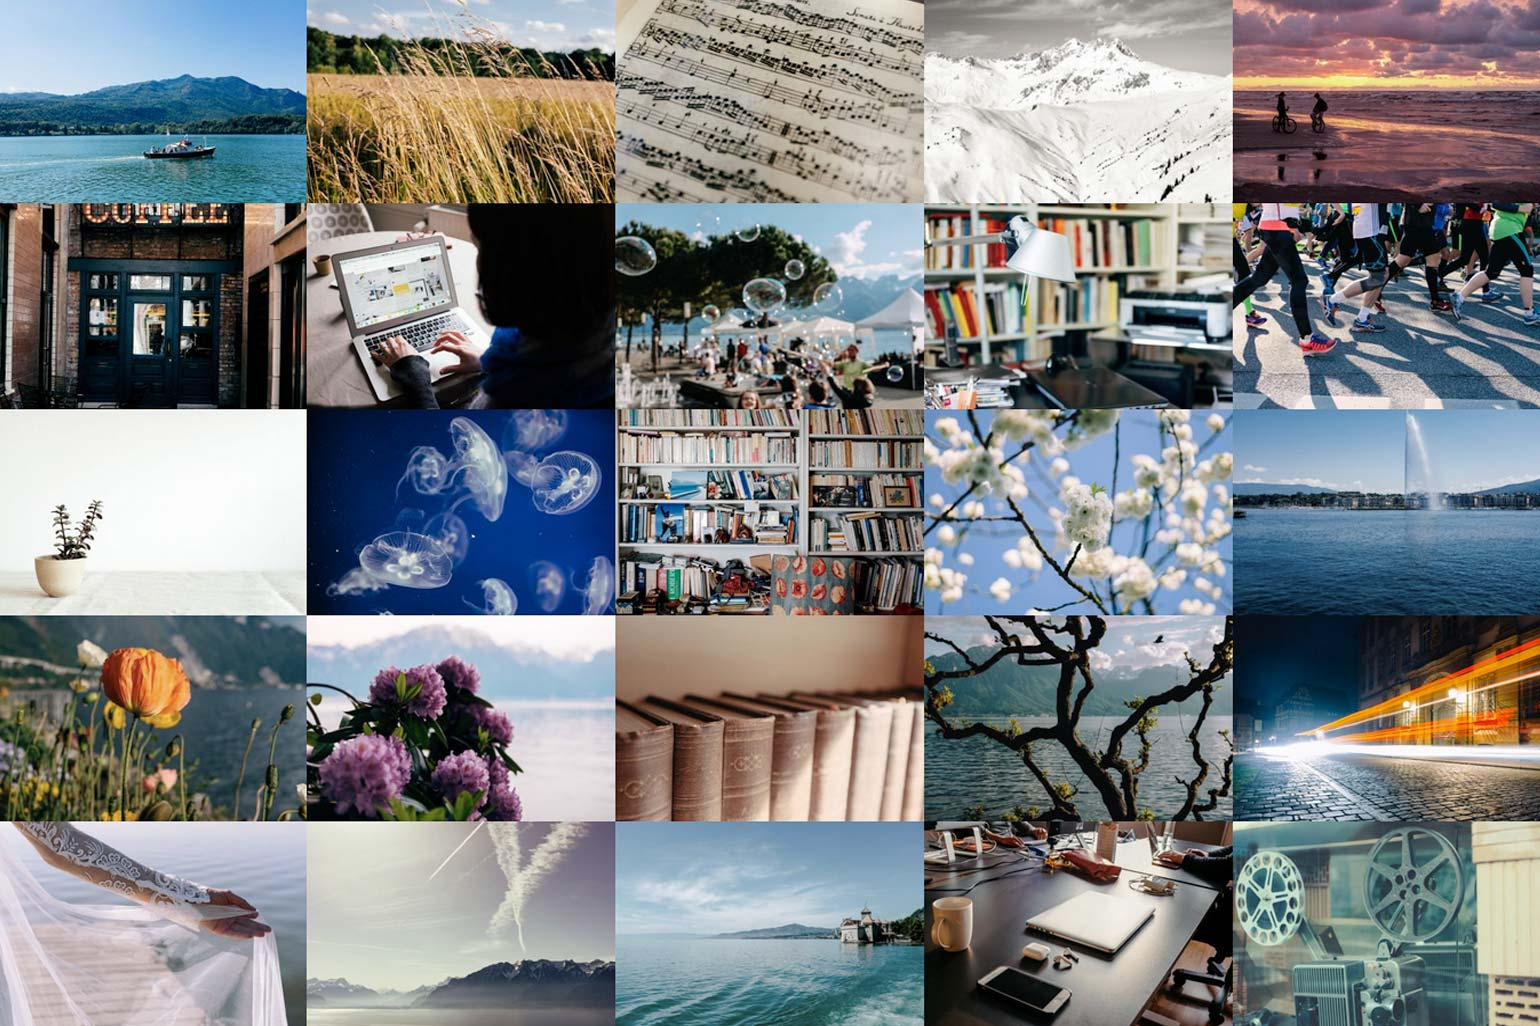 barnimages - best free images of 2019